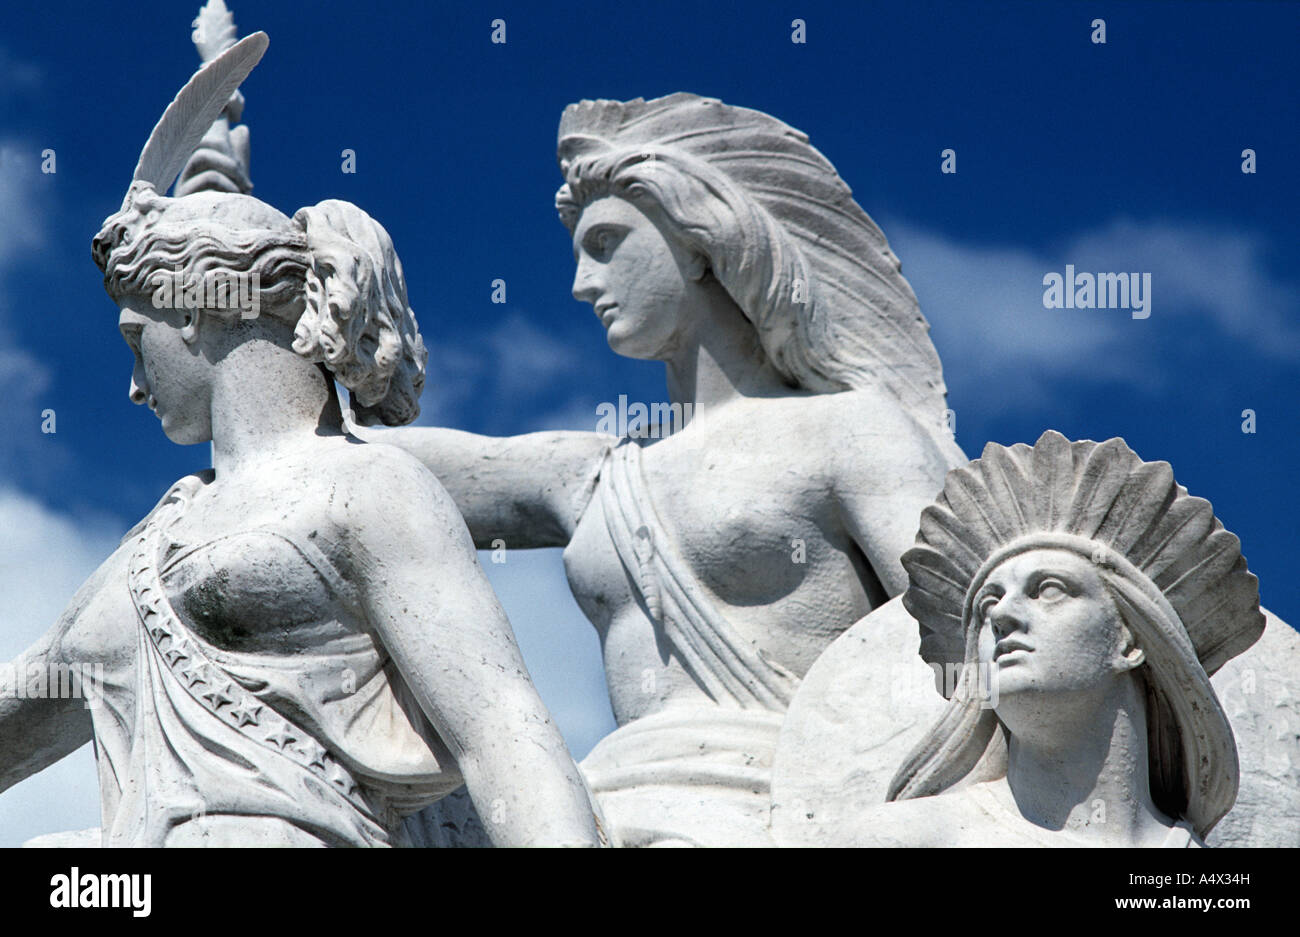 Detail of sculpture dedicated to the continent of America at the Albert Memorial Kensington Gardens London England - Stock Image